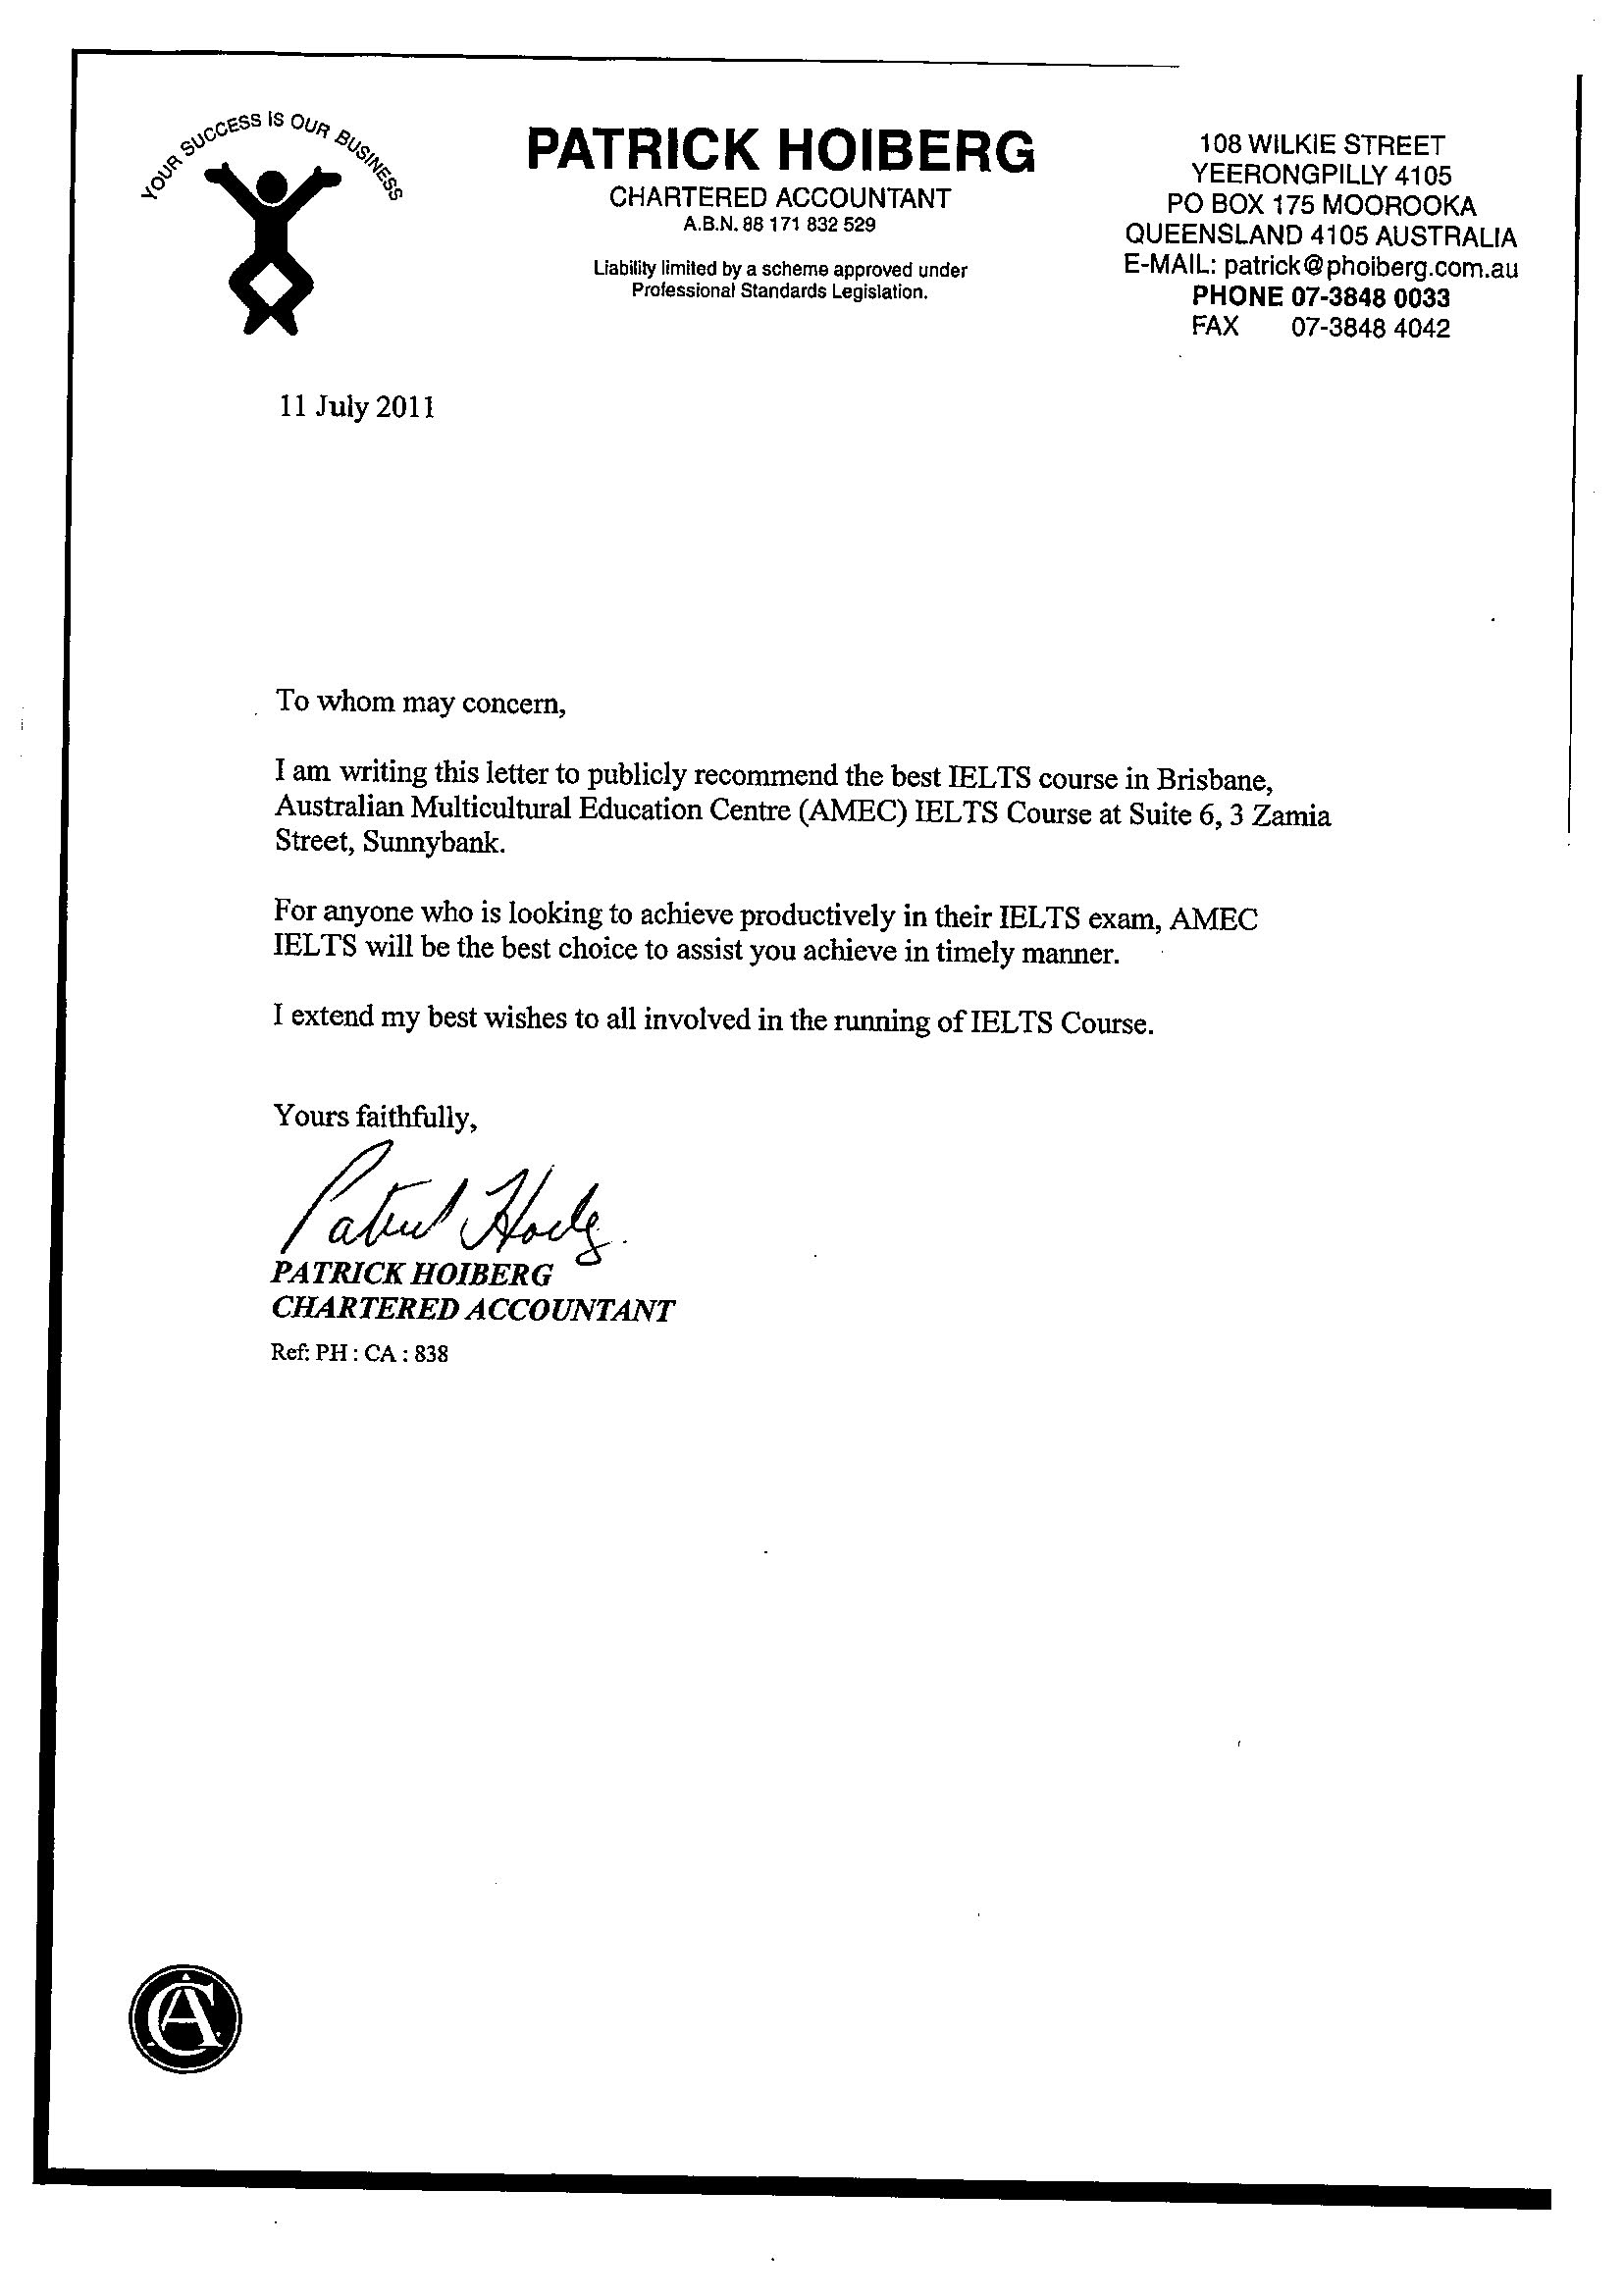 Letter from Patric Hoiberg to amec